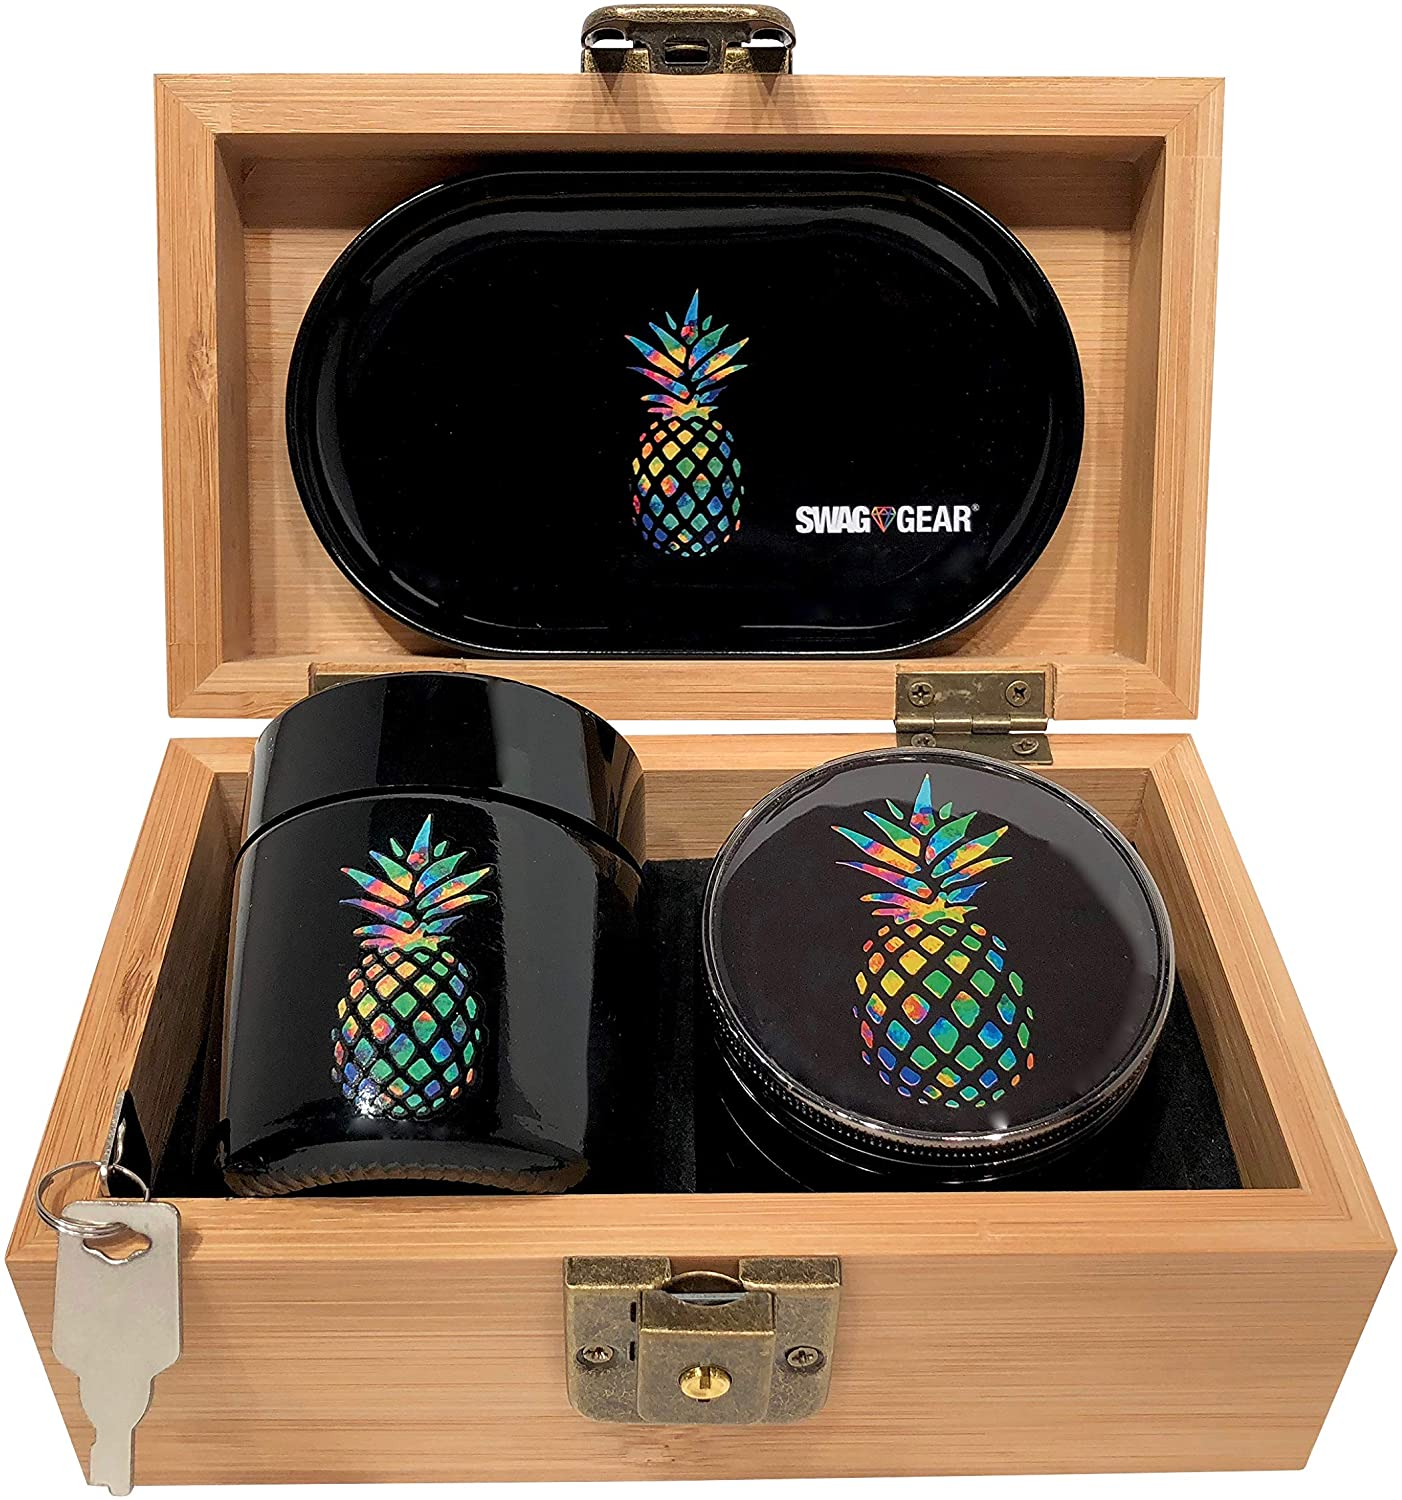 How Old Do You Have to Be to Buy a Grinder